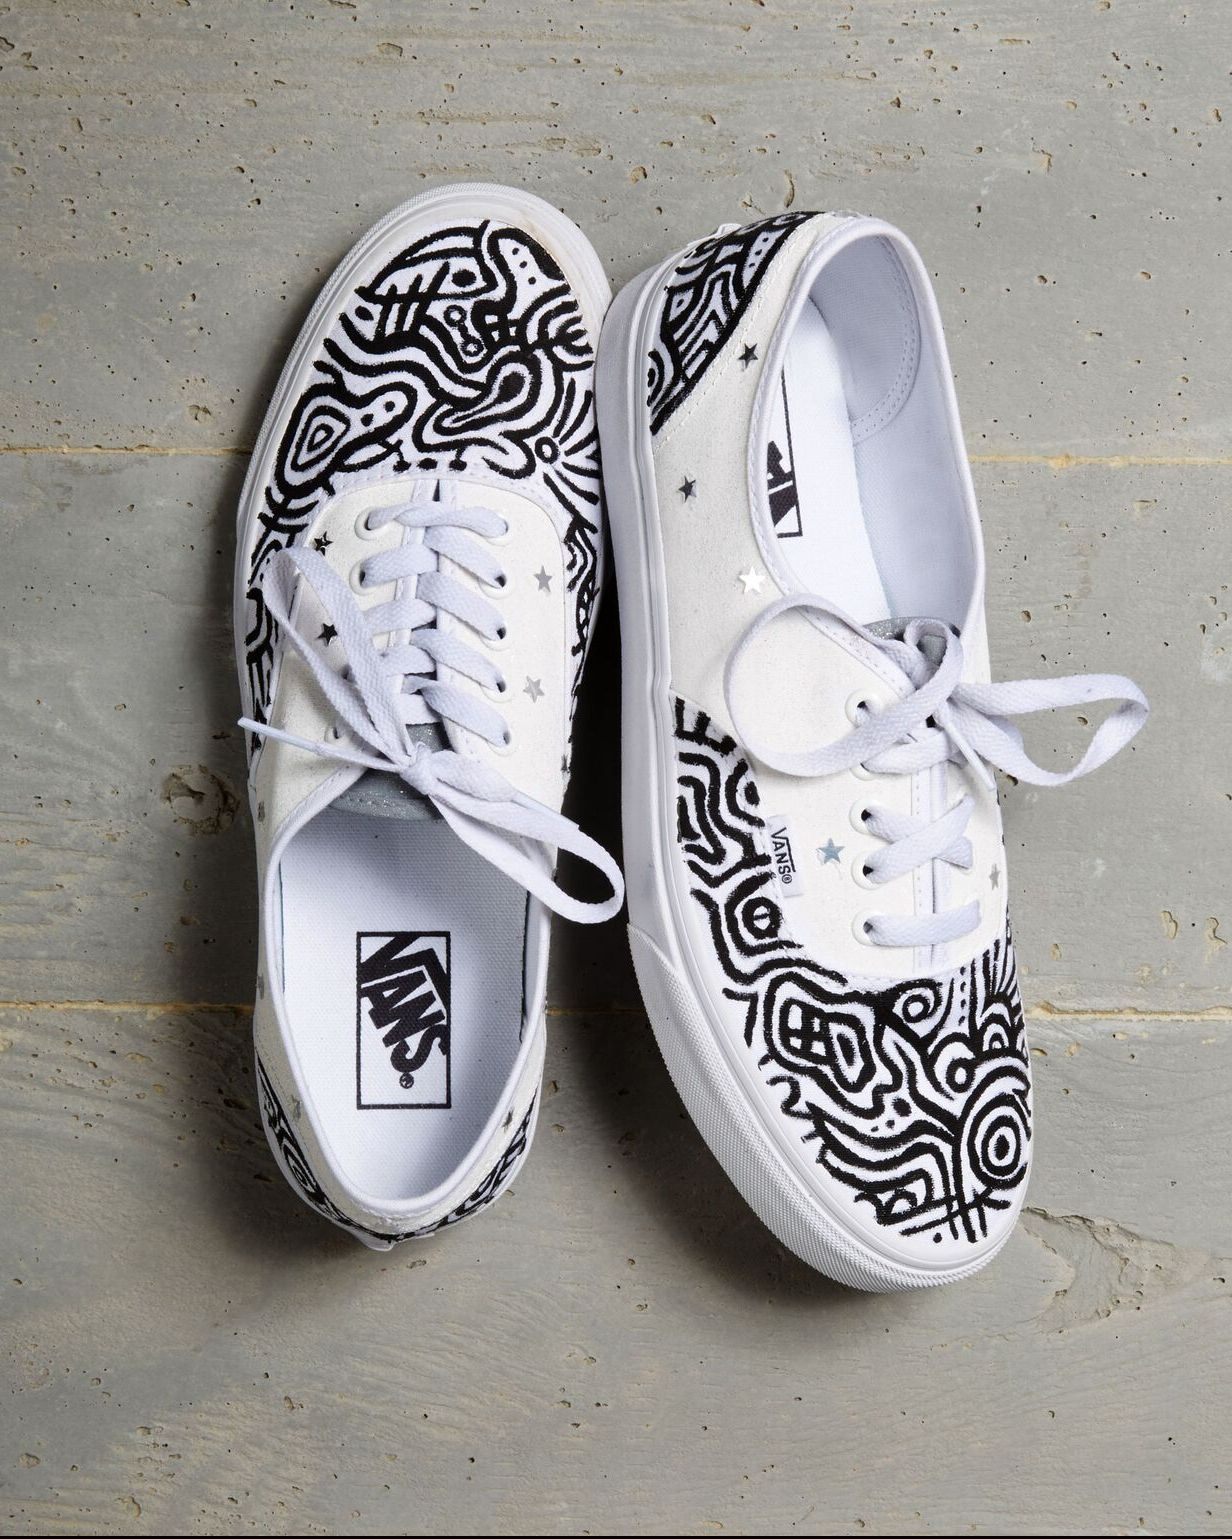 43f6b25150 Shoes by 2018 Vans Custom Culture ambassador